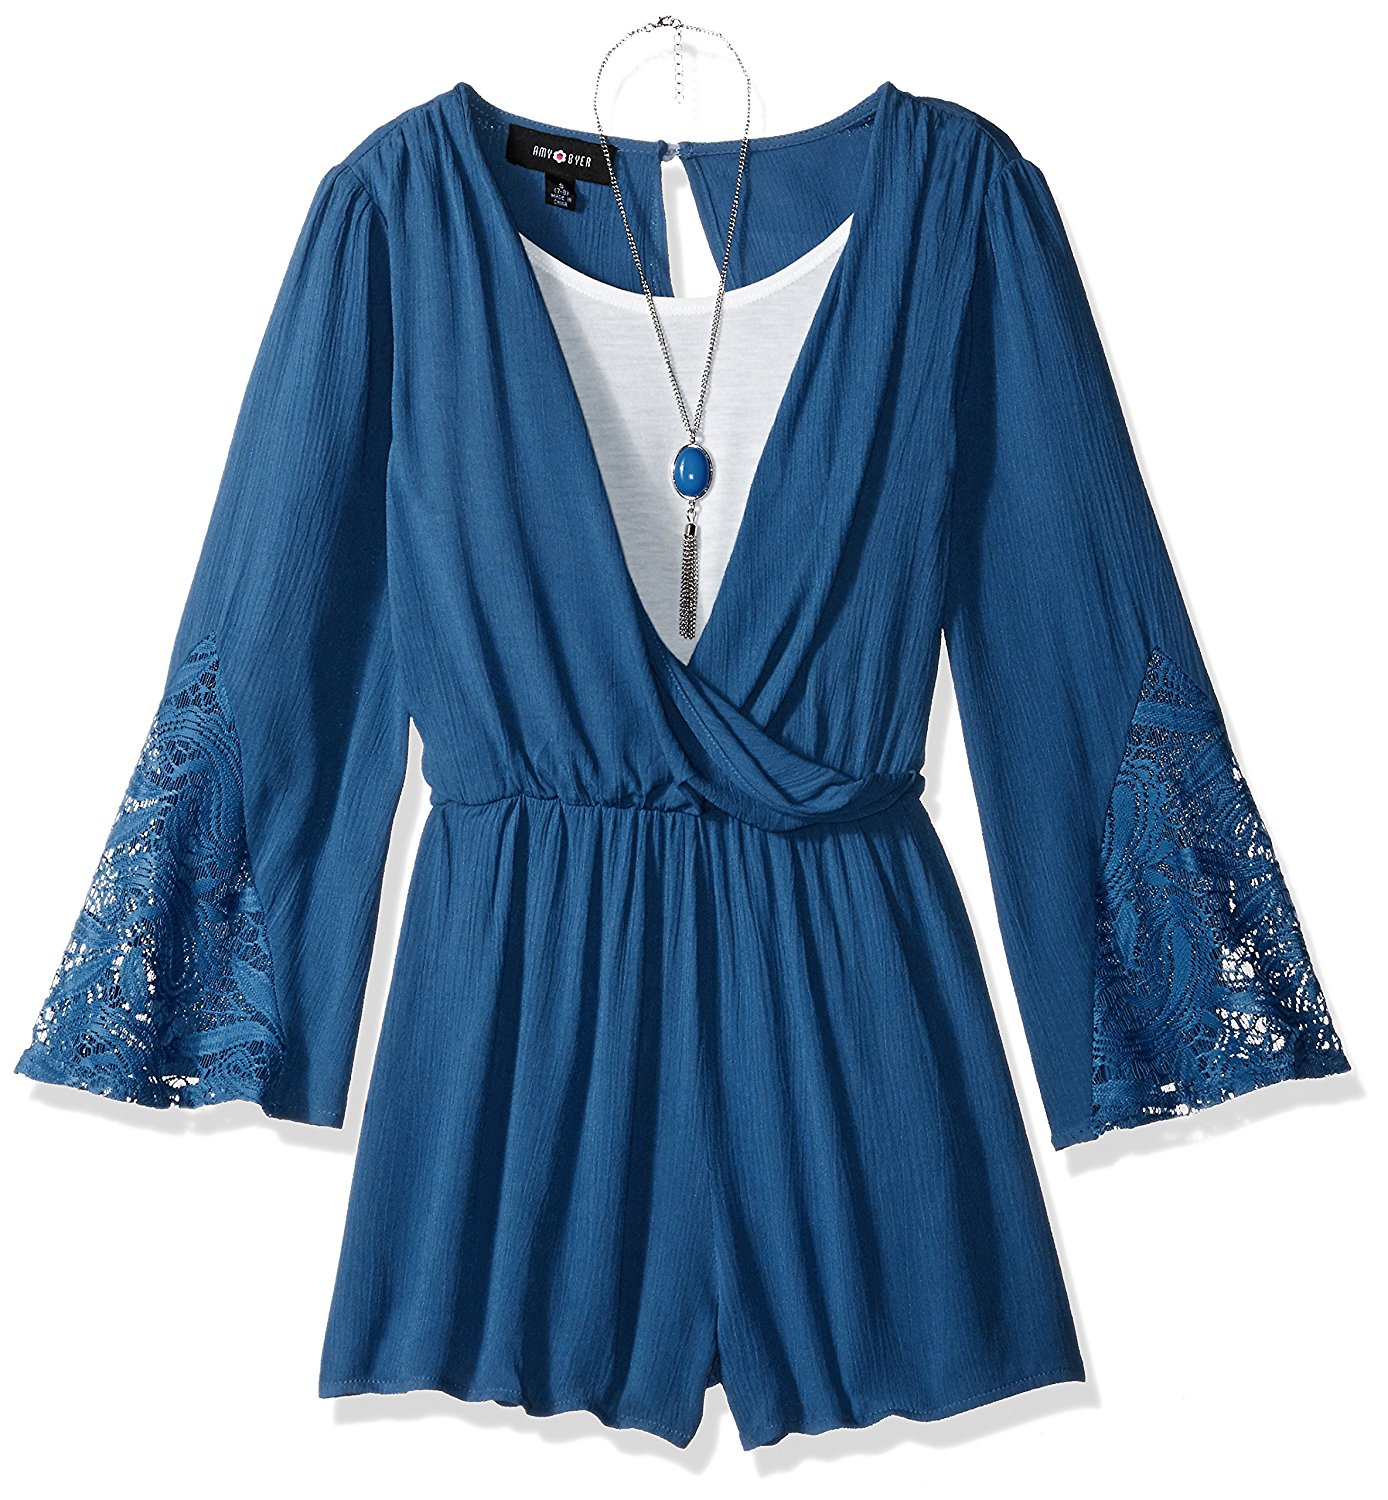 30e7e5014194 Buy Amy Byer Big Girls Bell Sleeve Romper with Lace Trim in Cheap ...